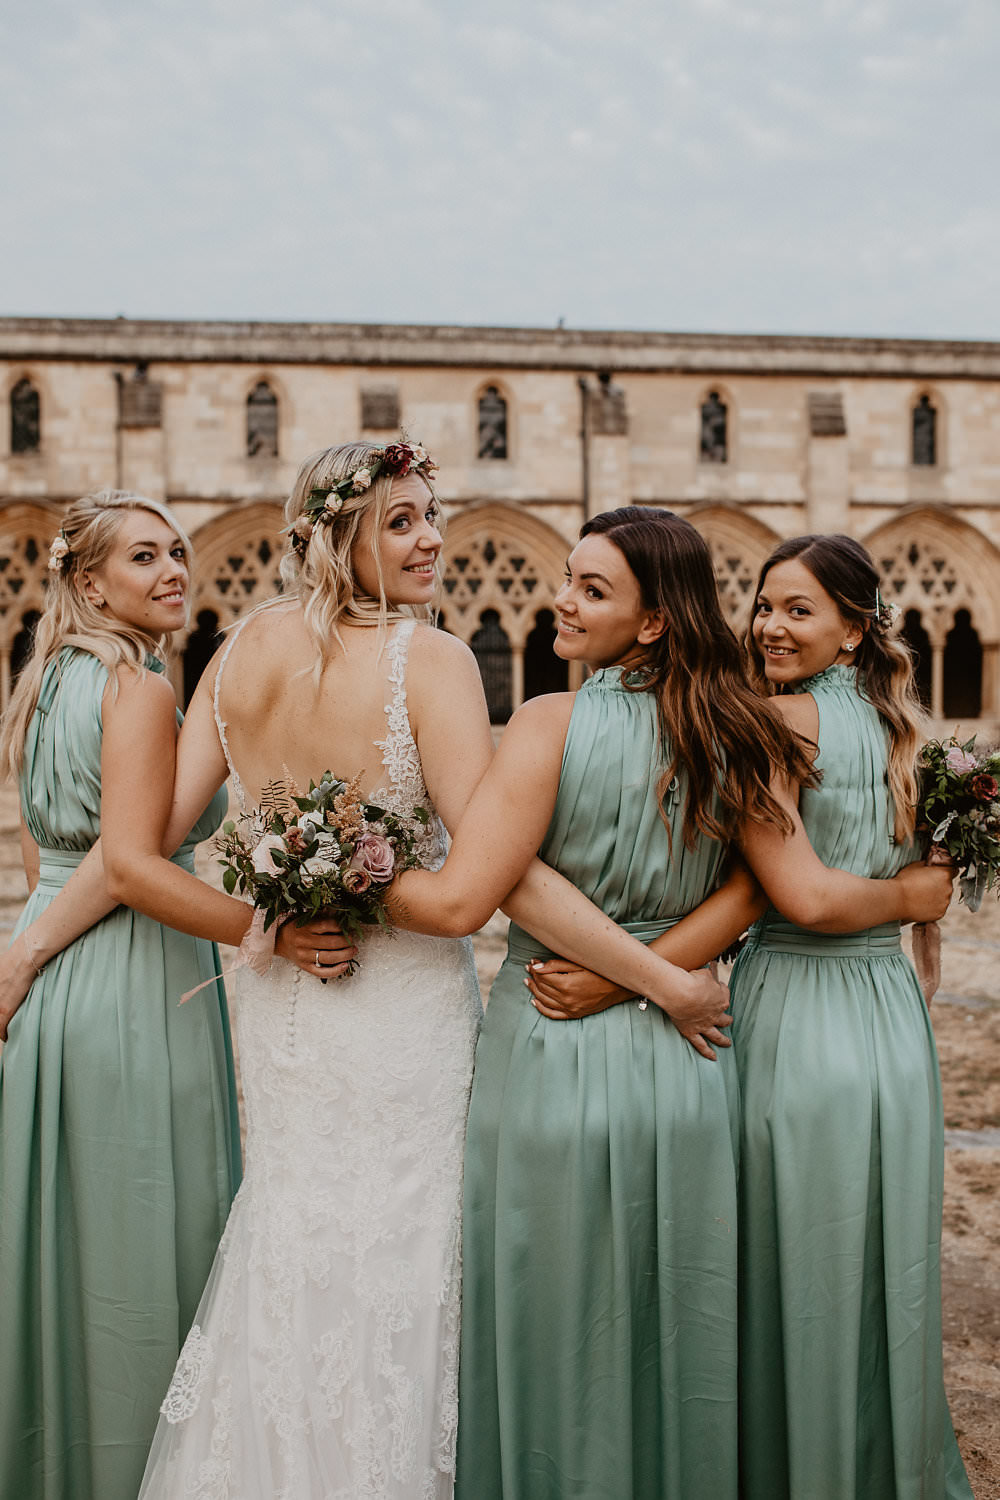 Pale Sage Green High Neck Maxi Long Dresses Bridesmaids Back Bride Squad Norwich Cathedral Wedding Camilla Andrea Photography